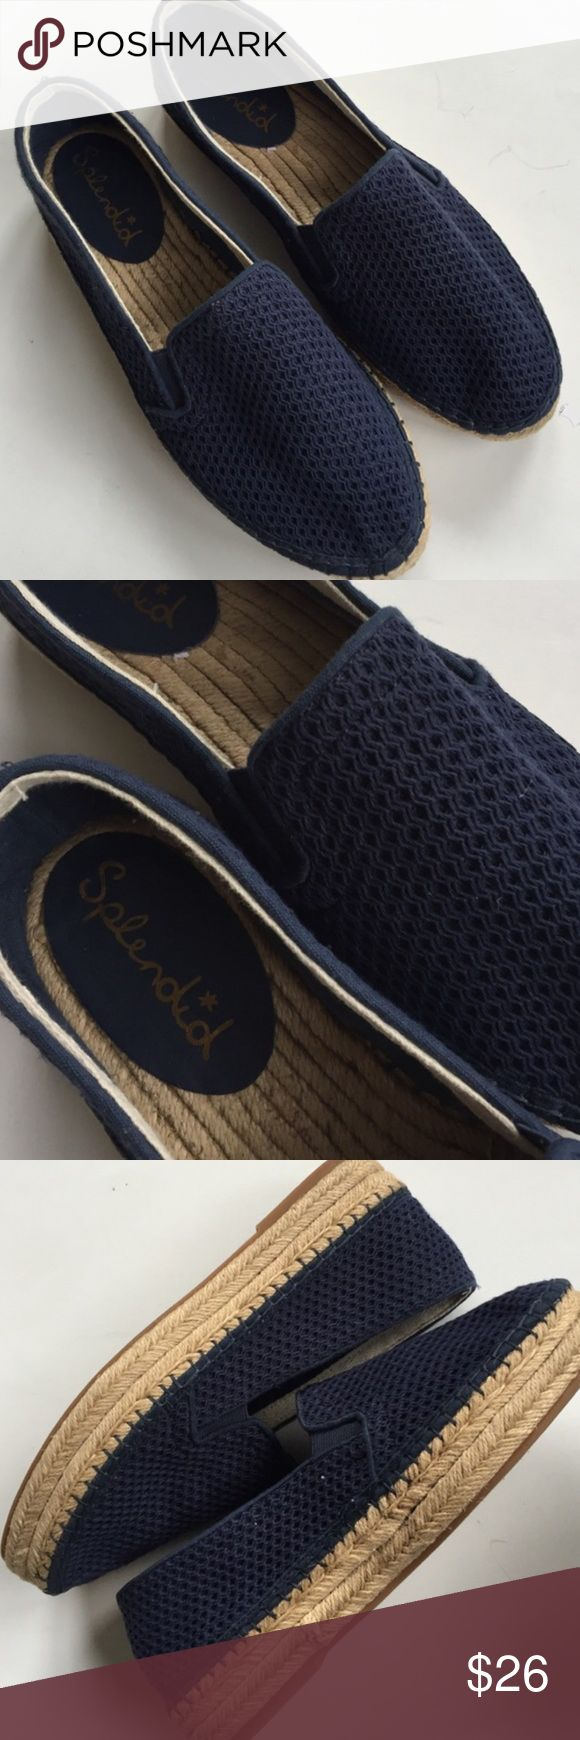 """NWOT Splendid shoes New without tags; Darling blue mesh-like uppers with 1"""" platform sole. Smoke-free/pet-free home. Splendid Shoes"""